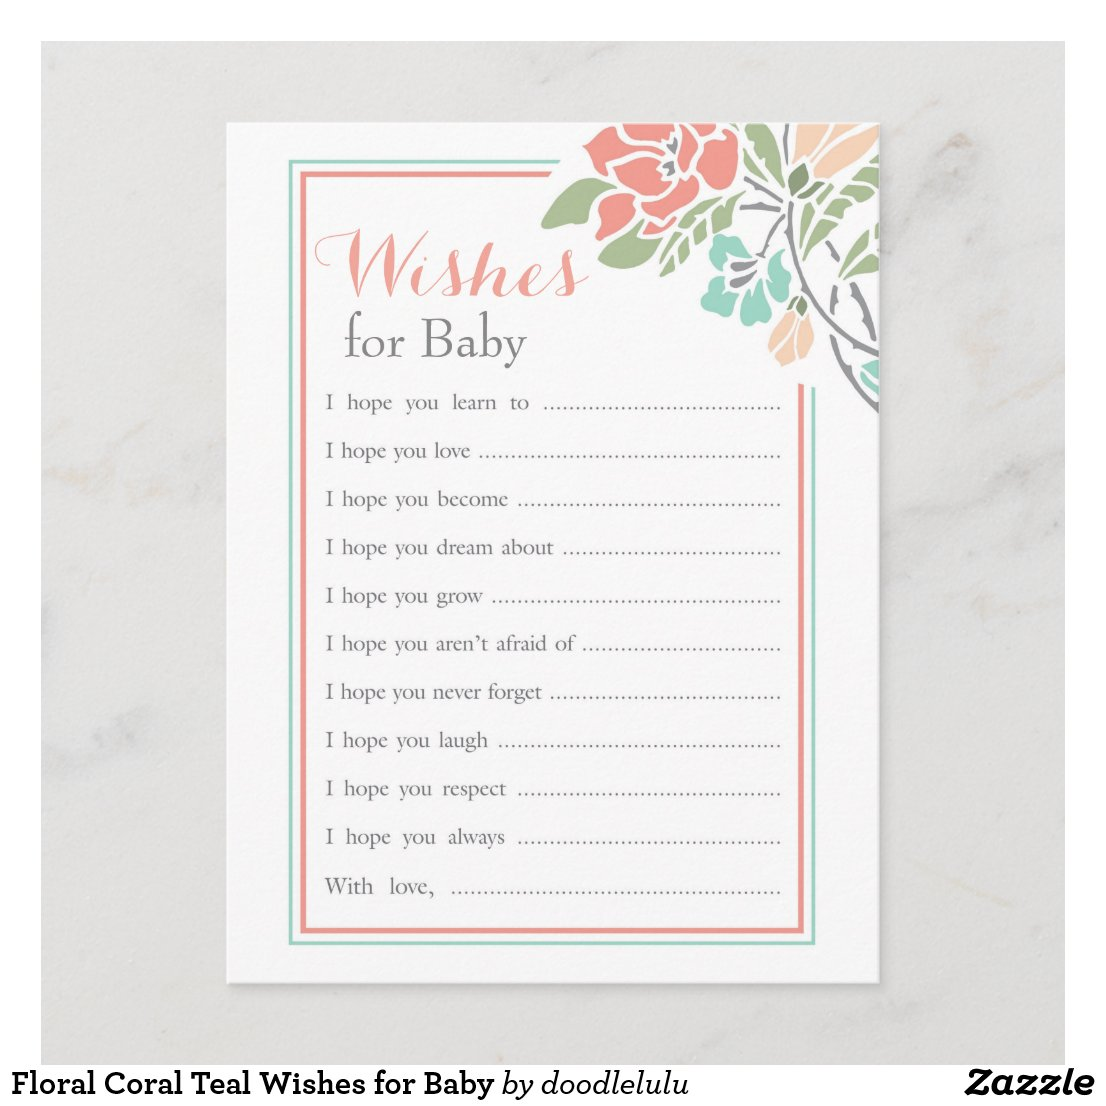 Floral Coral Teal Wishes for Baby Advice Card